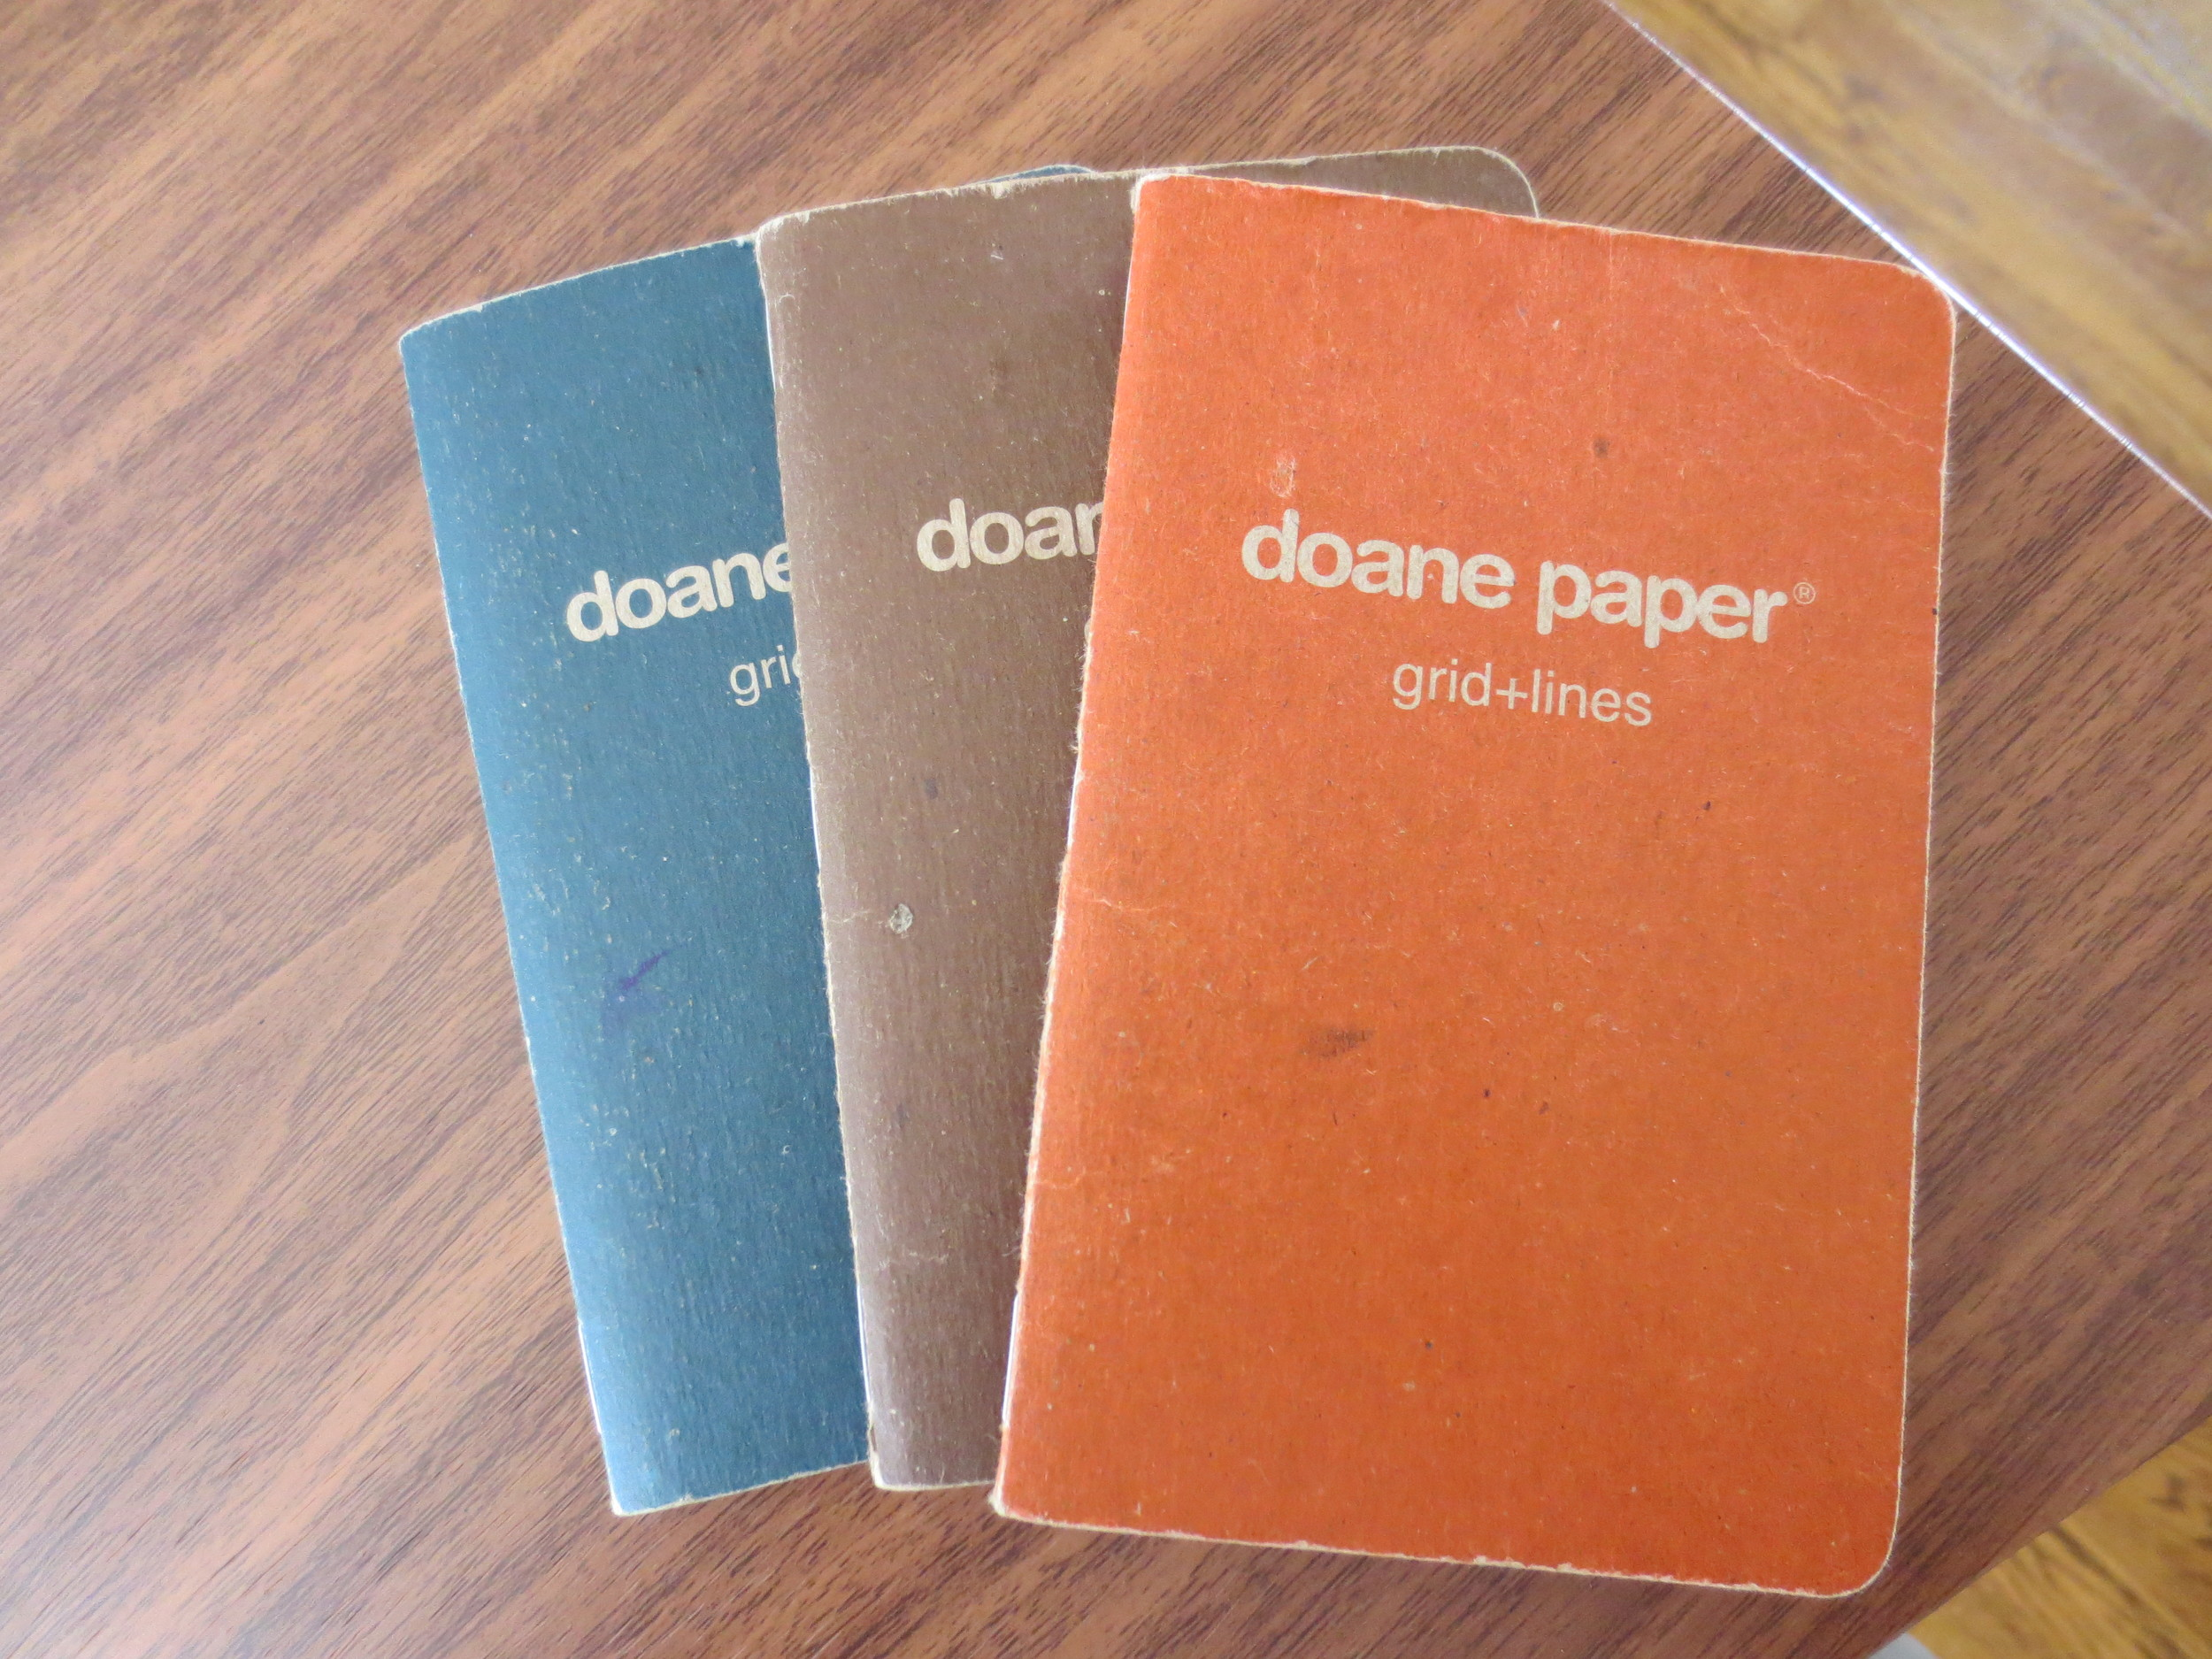 Doane Paper Utility Journal Garage Edition:  Finished the three-pack!  They look good worn out.